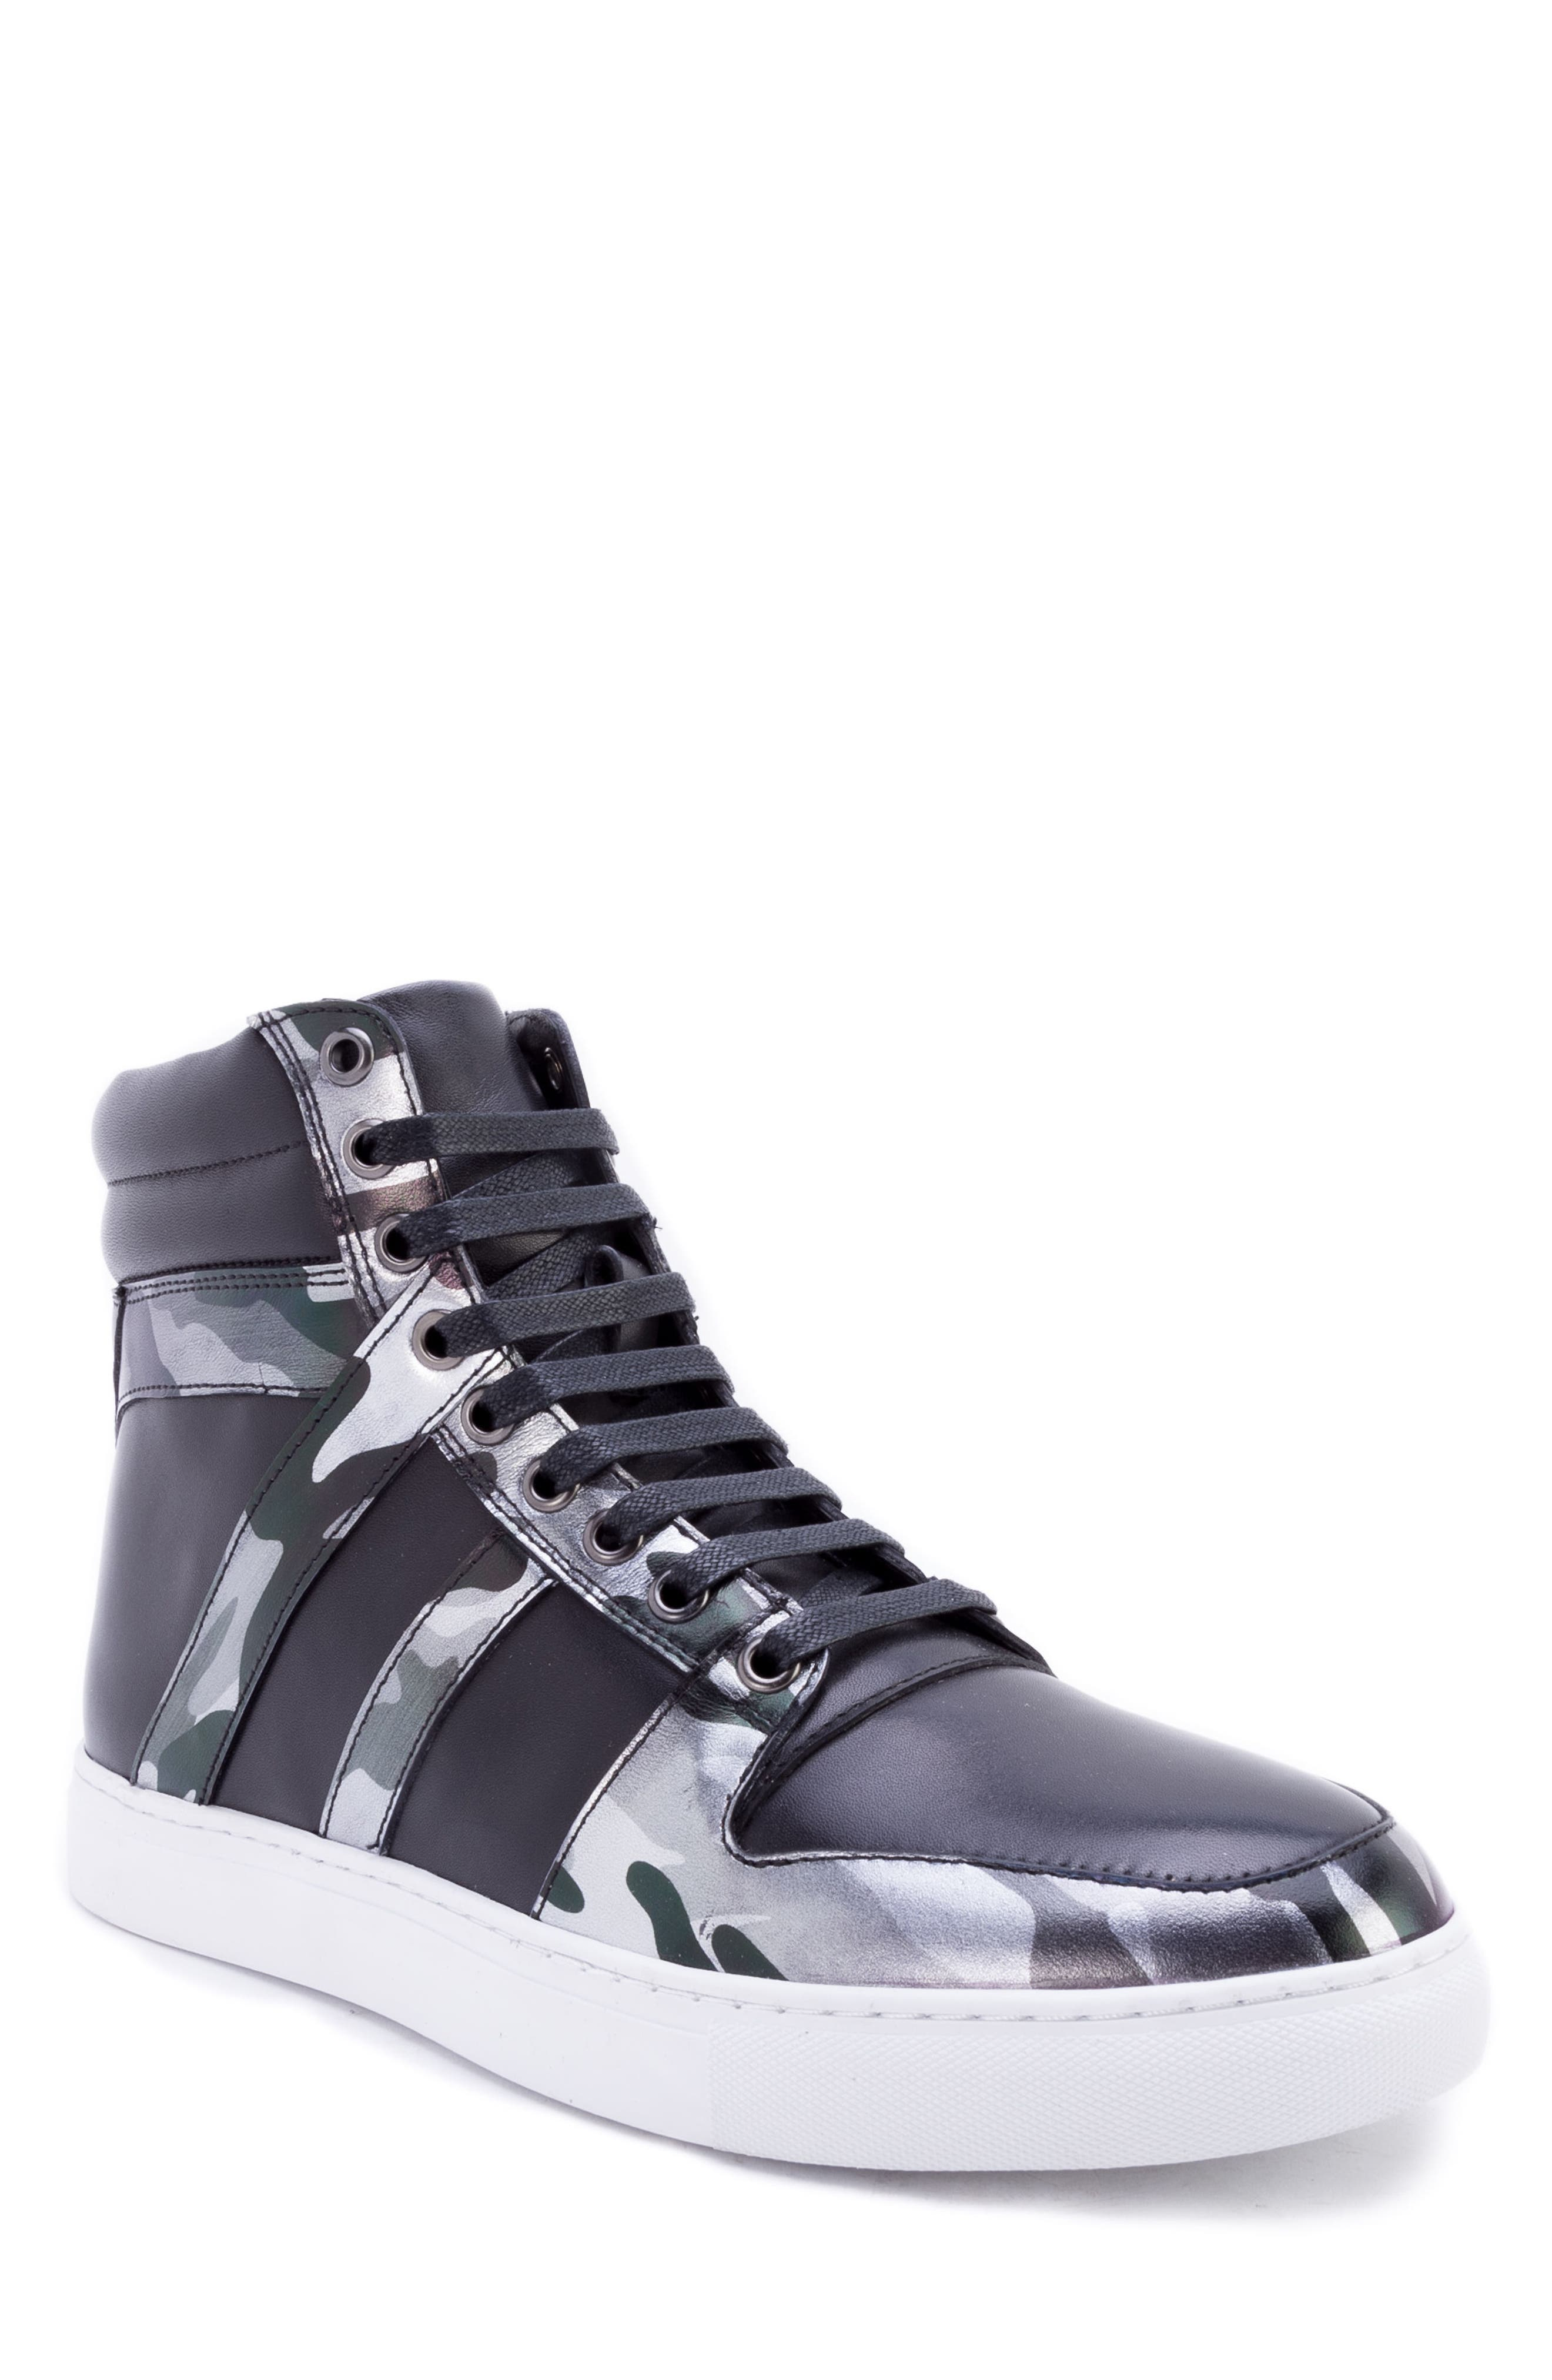 Sutherland Sneaker,                         Main,                         color, BLACK LEATHER